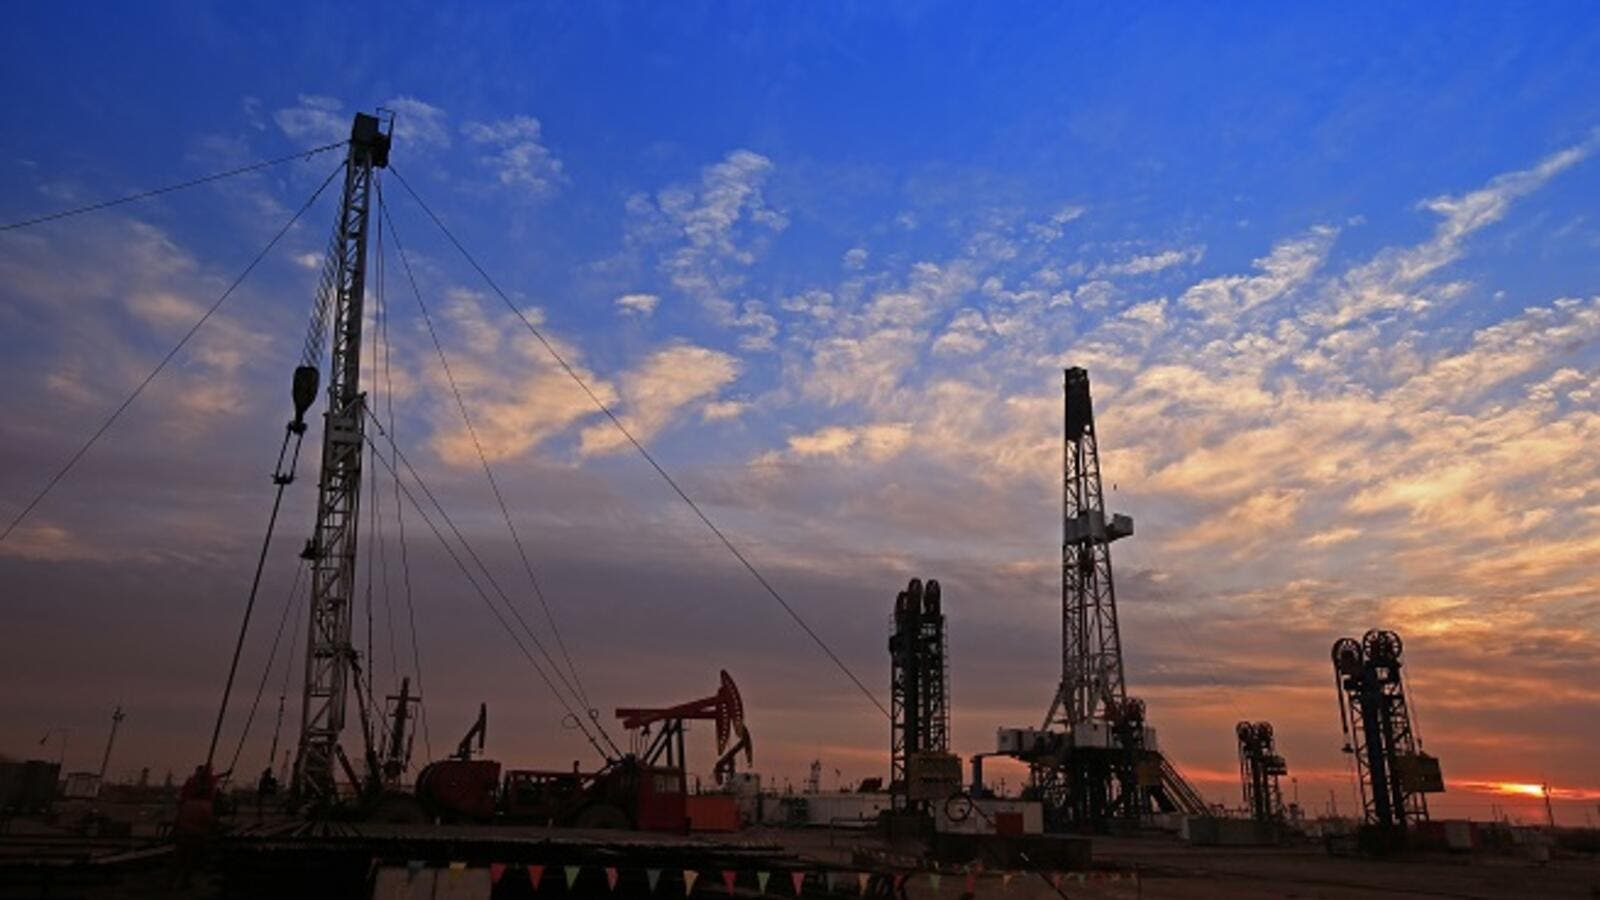 The rising oil price has reduced the need for Gulf governments to sell bonds. (Shutterstock)